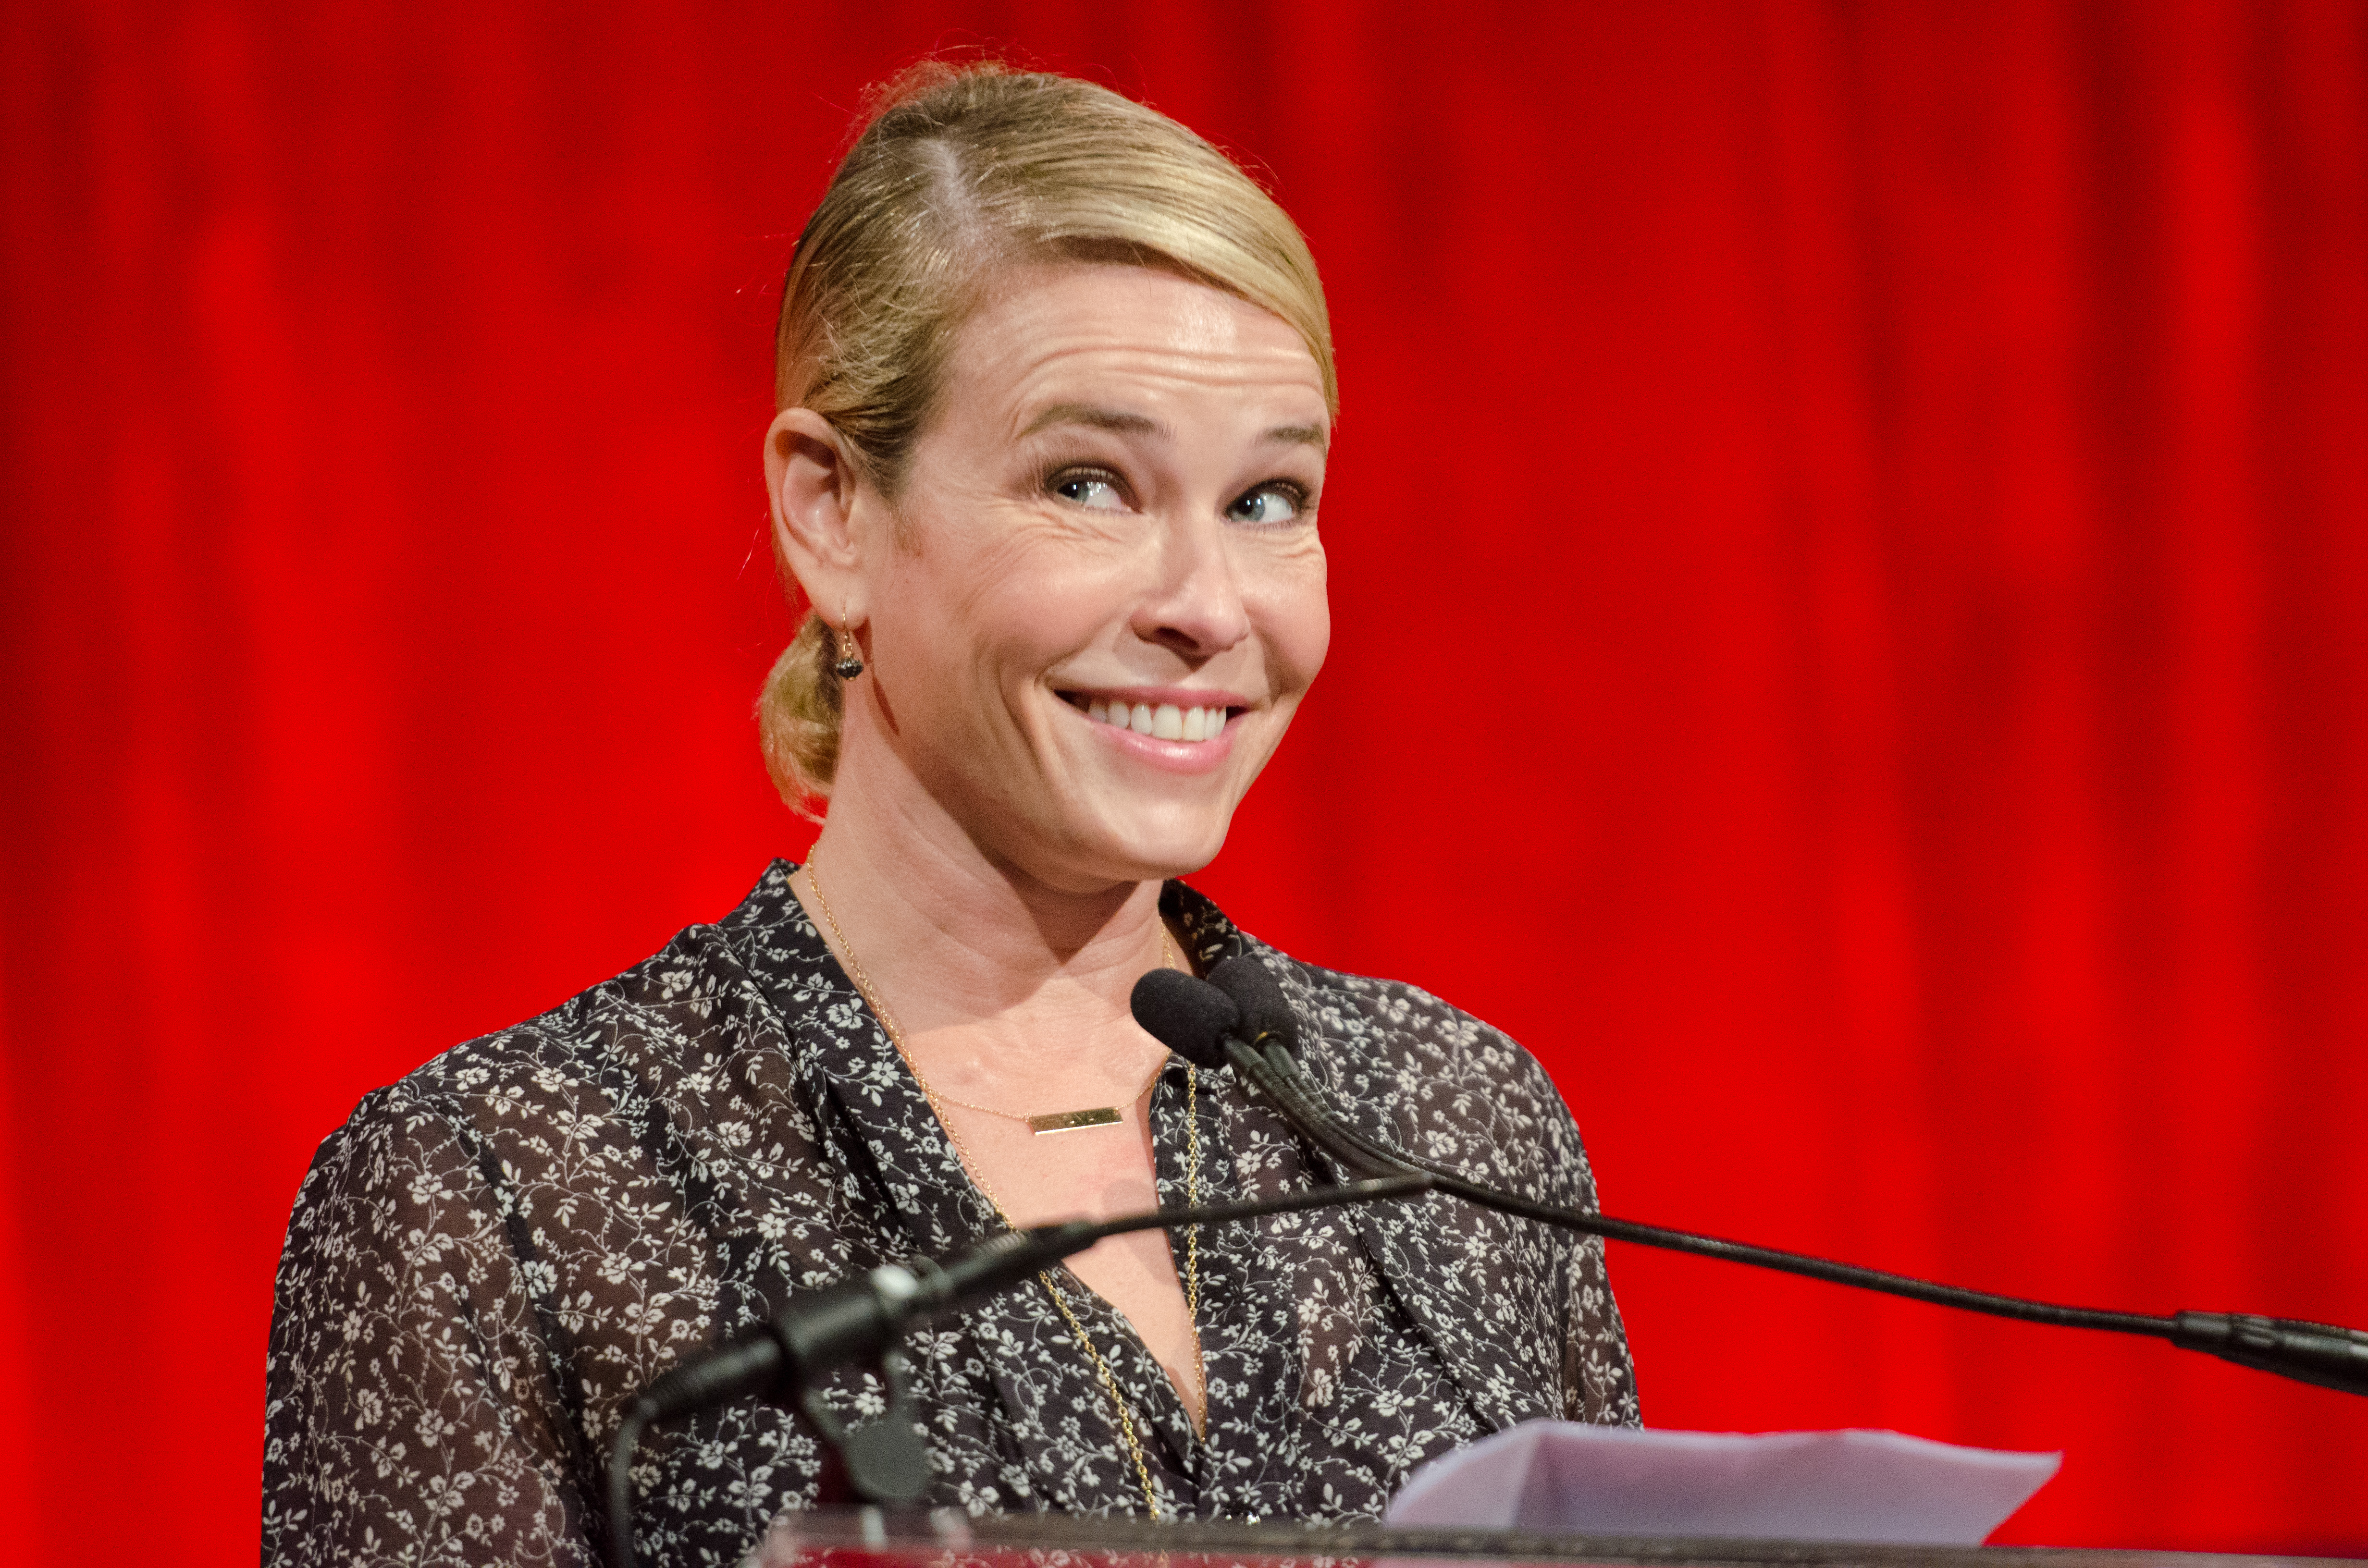 Chelsea Handler speaks at the Ms. Foundation for Women Gloria Awards at Cipriani 42nd Street on Thursday, May 1, 2014 in New York. (Photo by Scott Roth/Invision/AP)